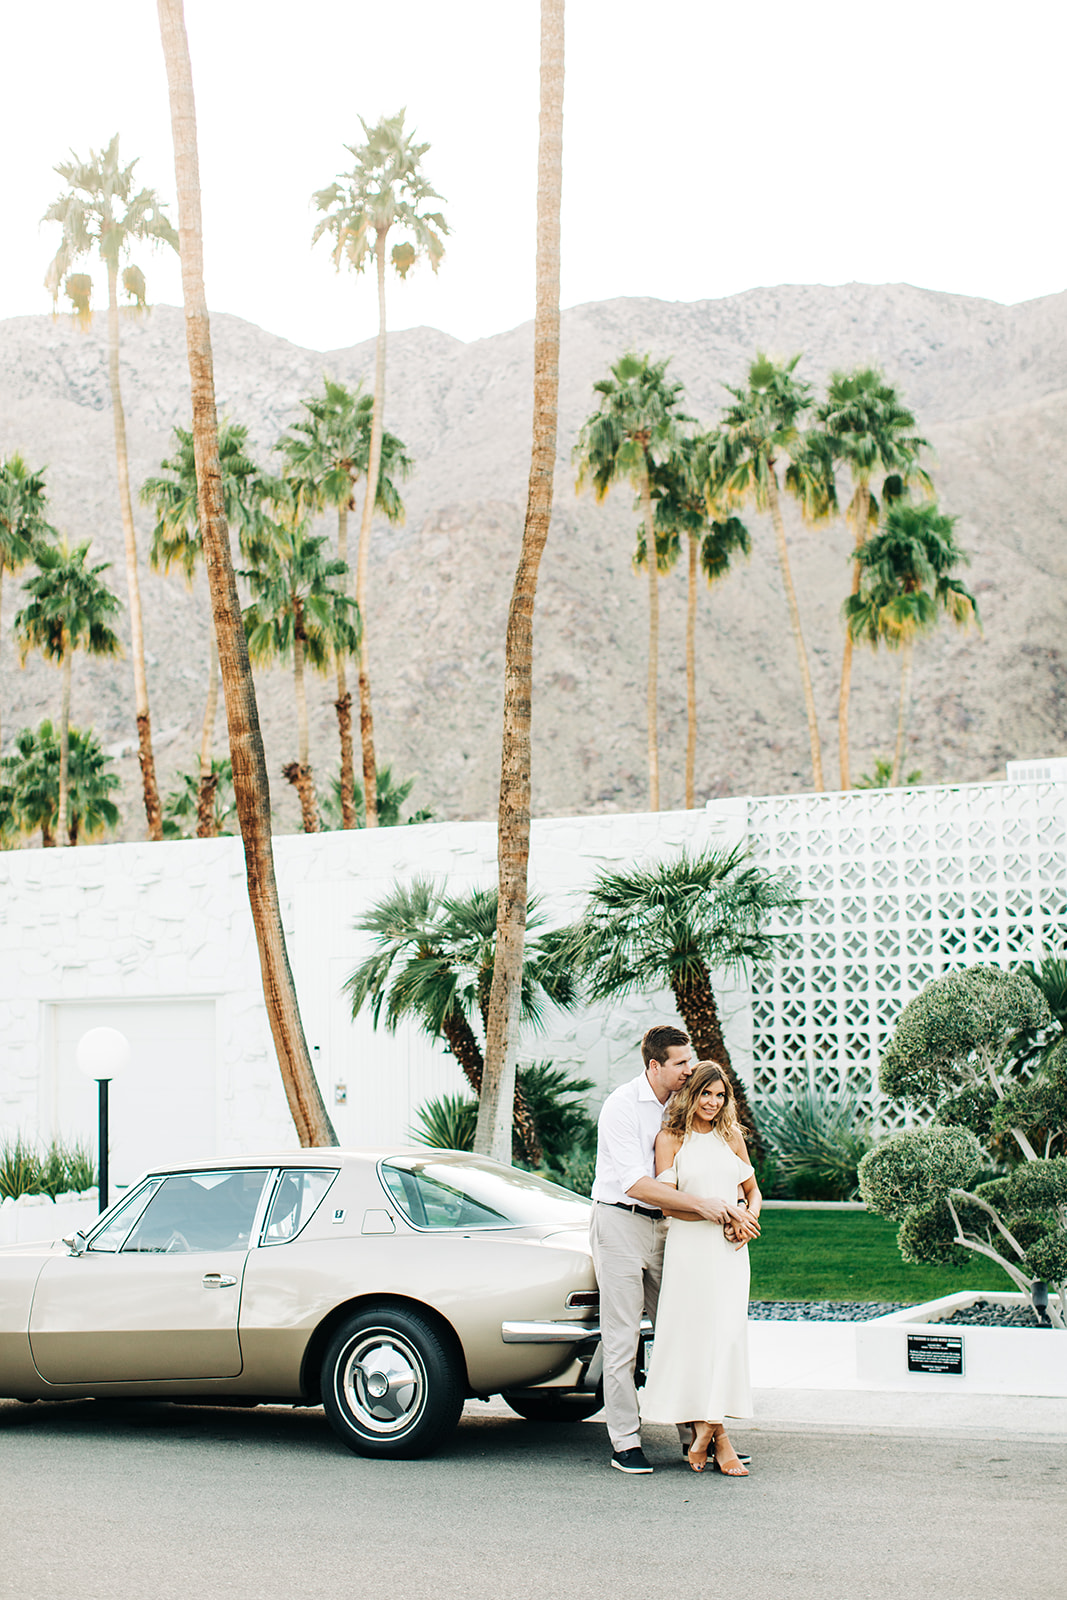 Paulina-Drew_Palm-Springs-Engagement-Photos_Clarisse-Rae_Southern-California-Wedding-Photographer-23